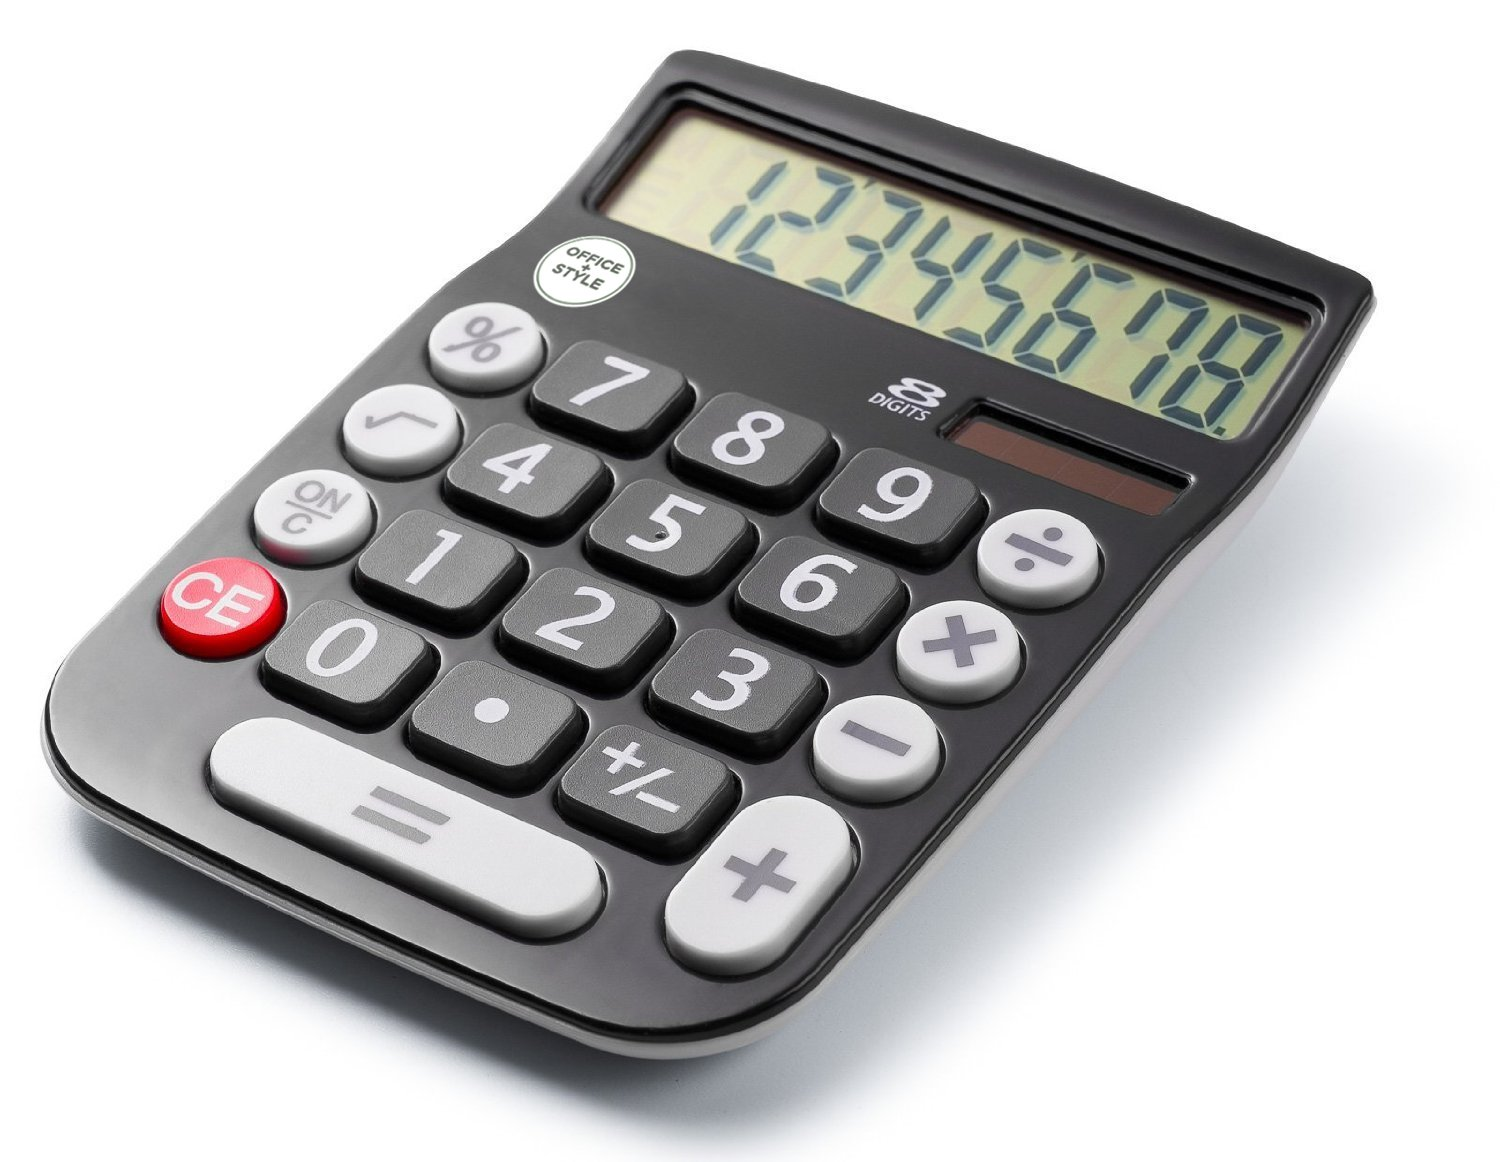 Office Style 8 Digit Dual Powered Desktop Calculator, Large LCD Display, Black (Pack Of 6) by Office Style (Image #4)